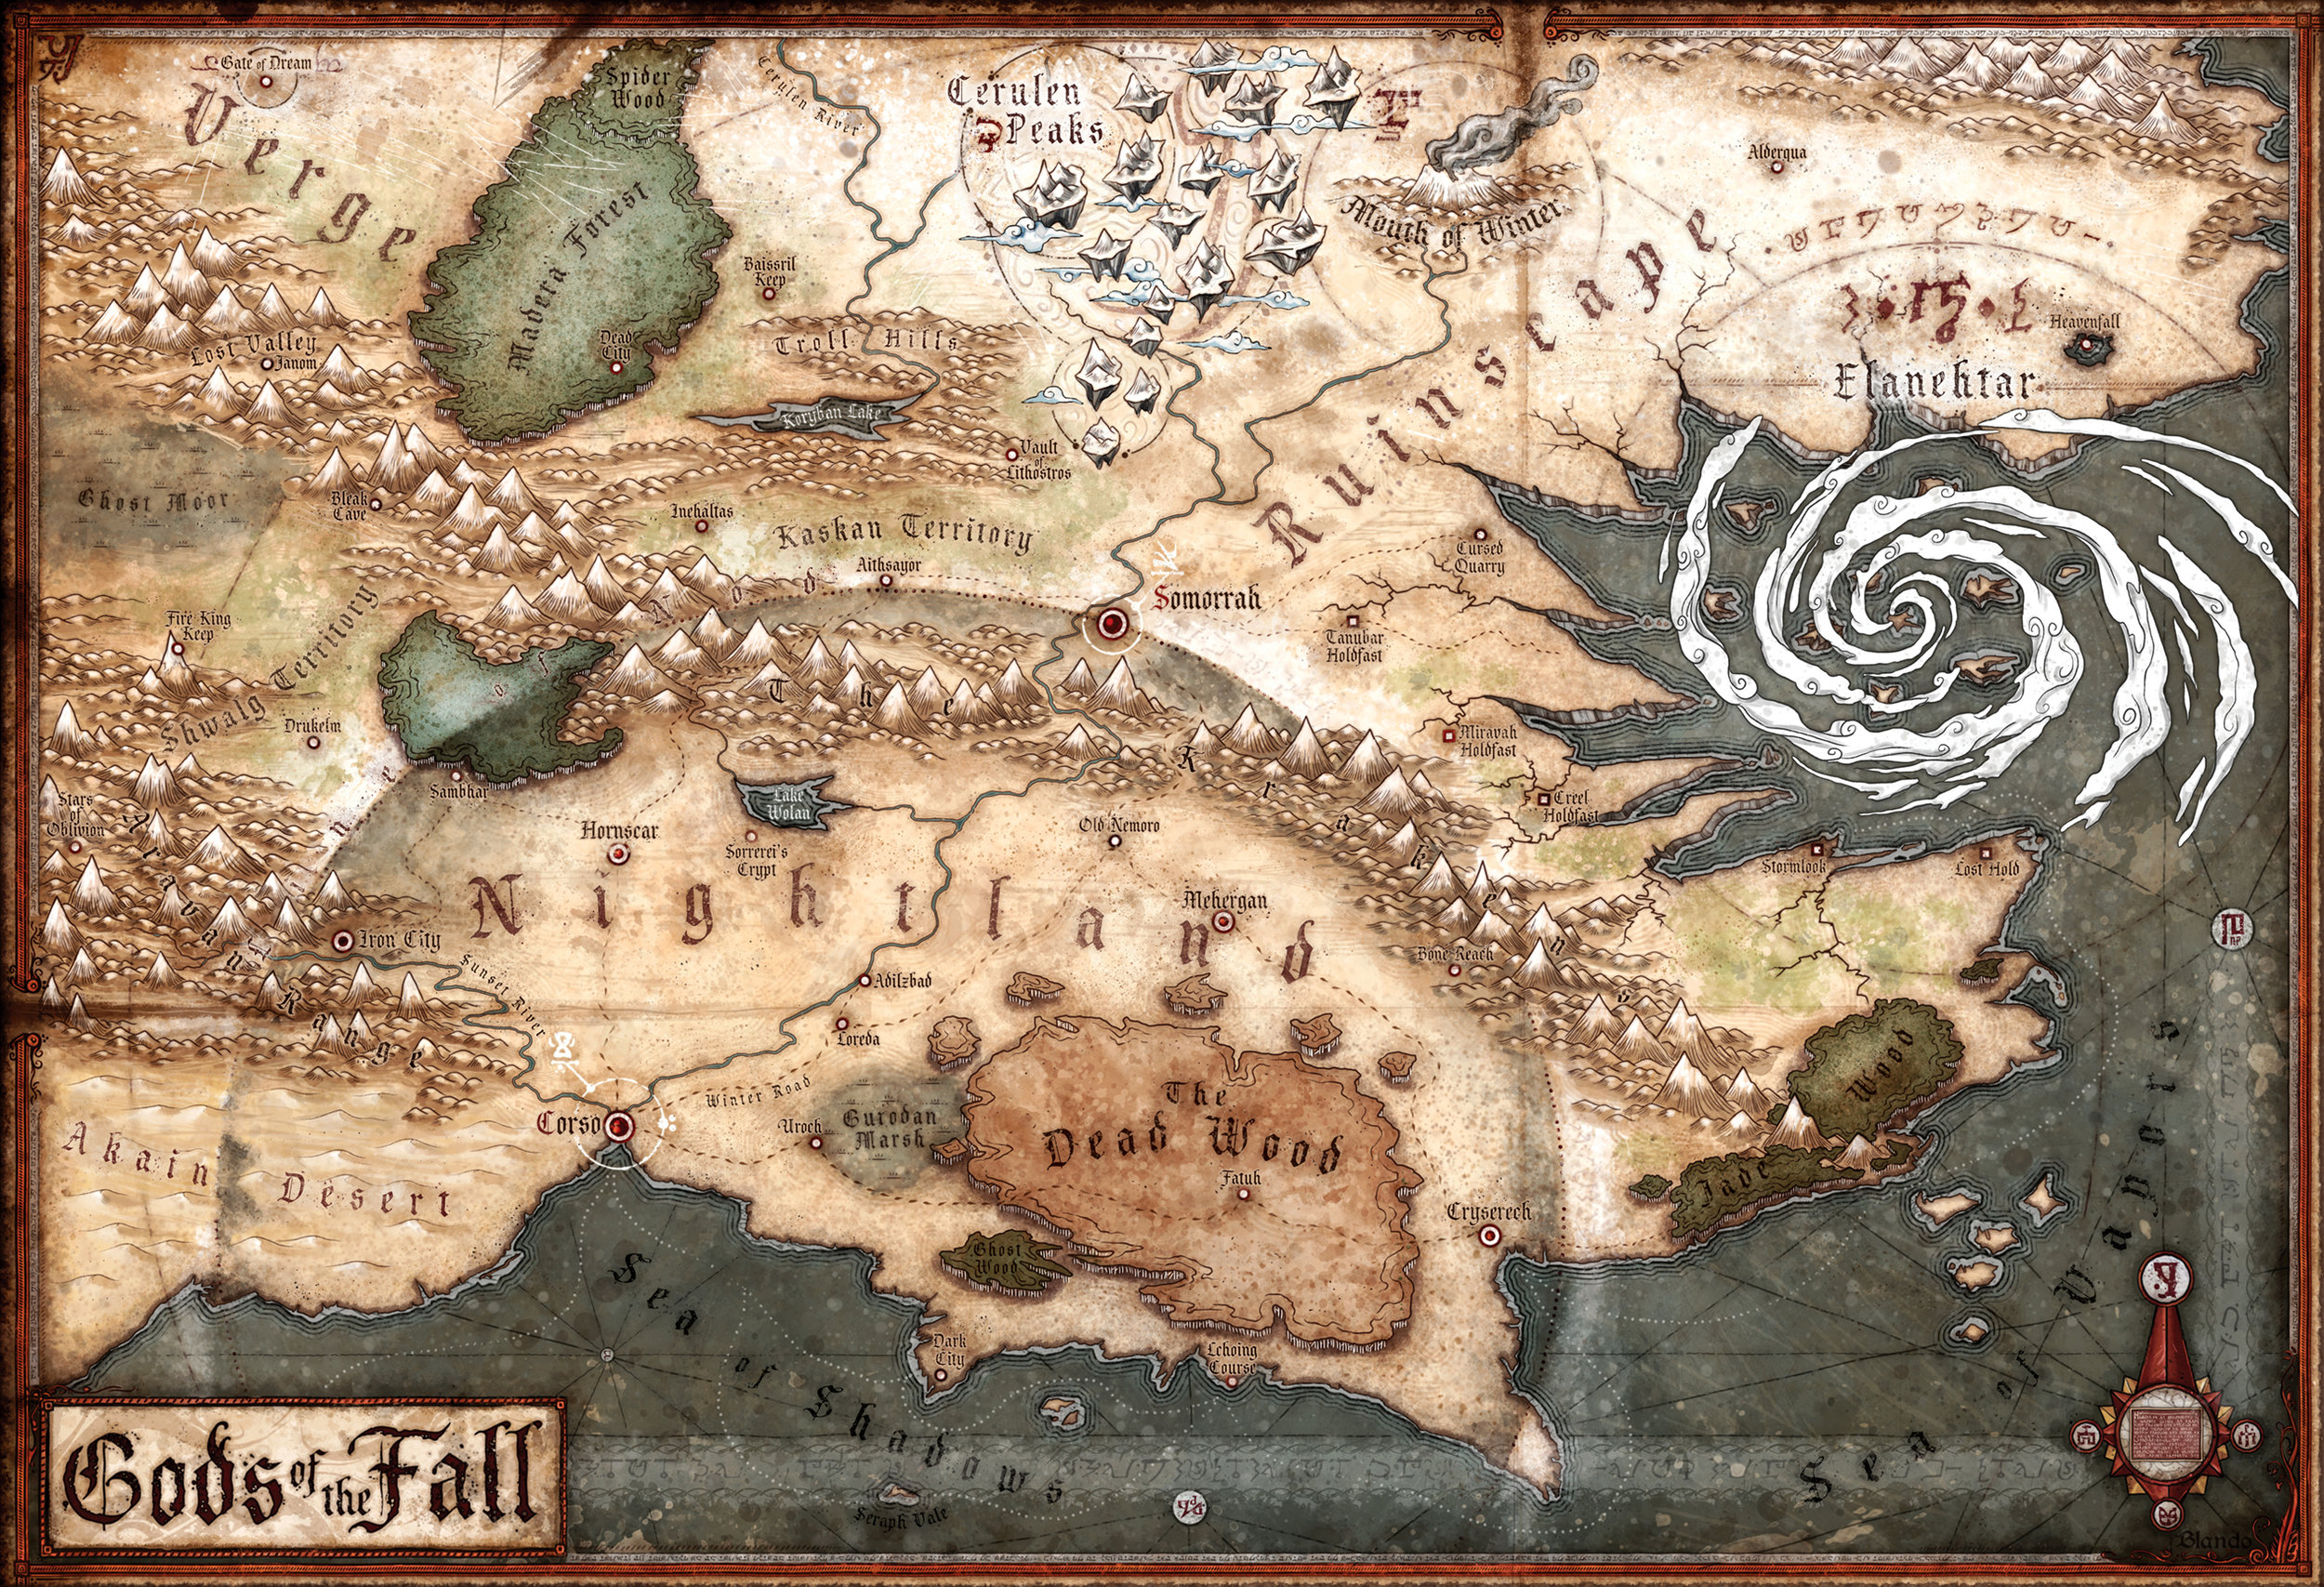 Gods of the Fall: A map of the world